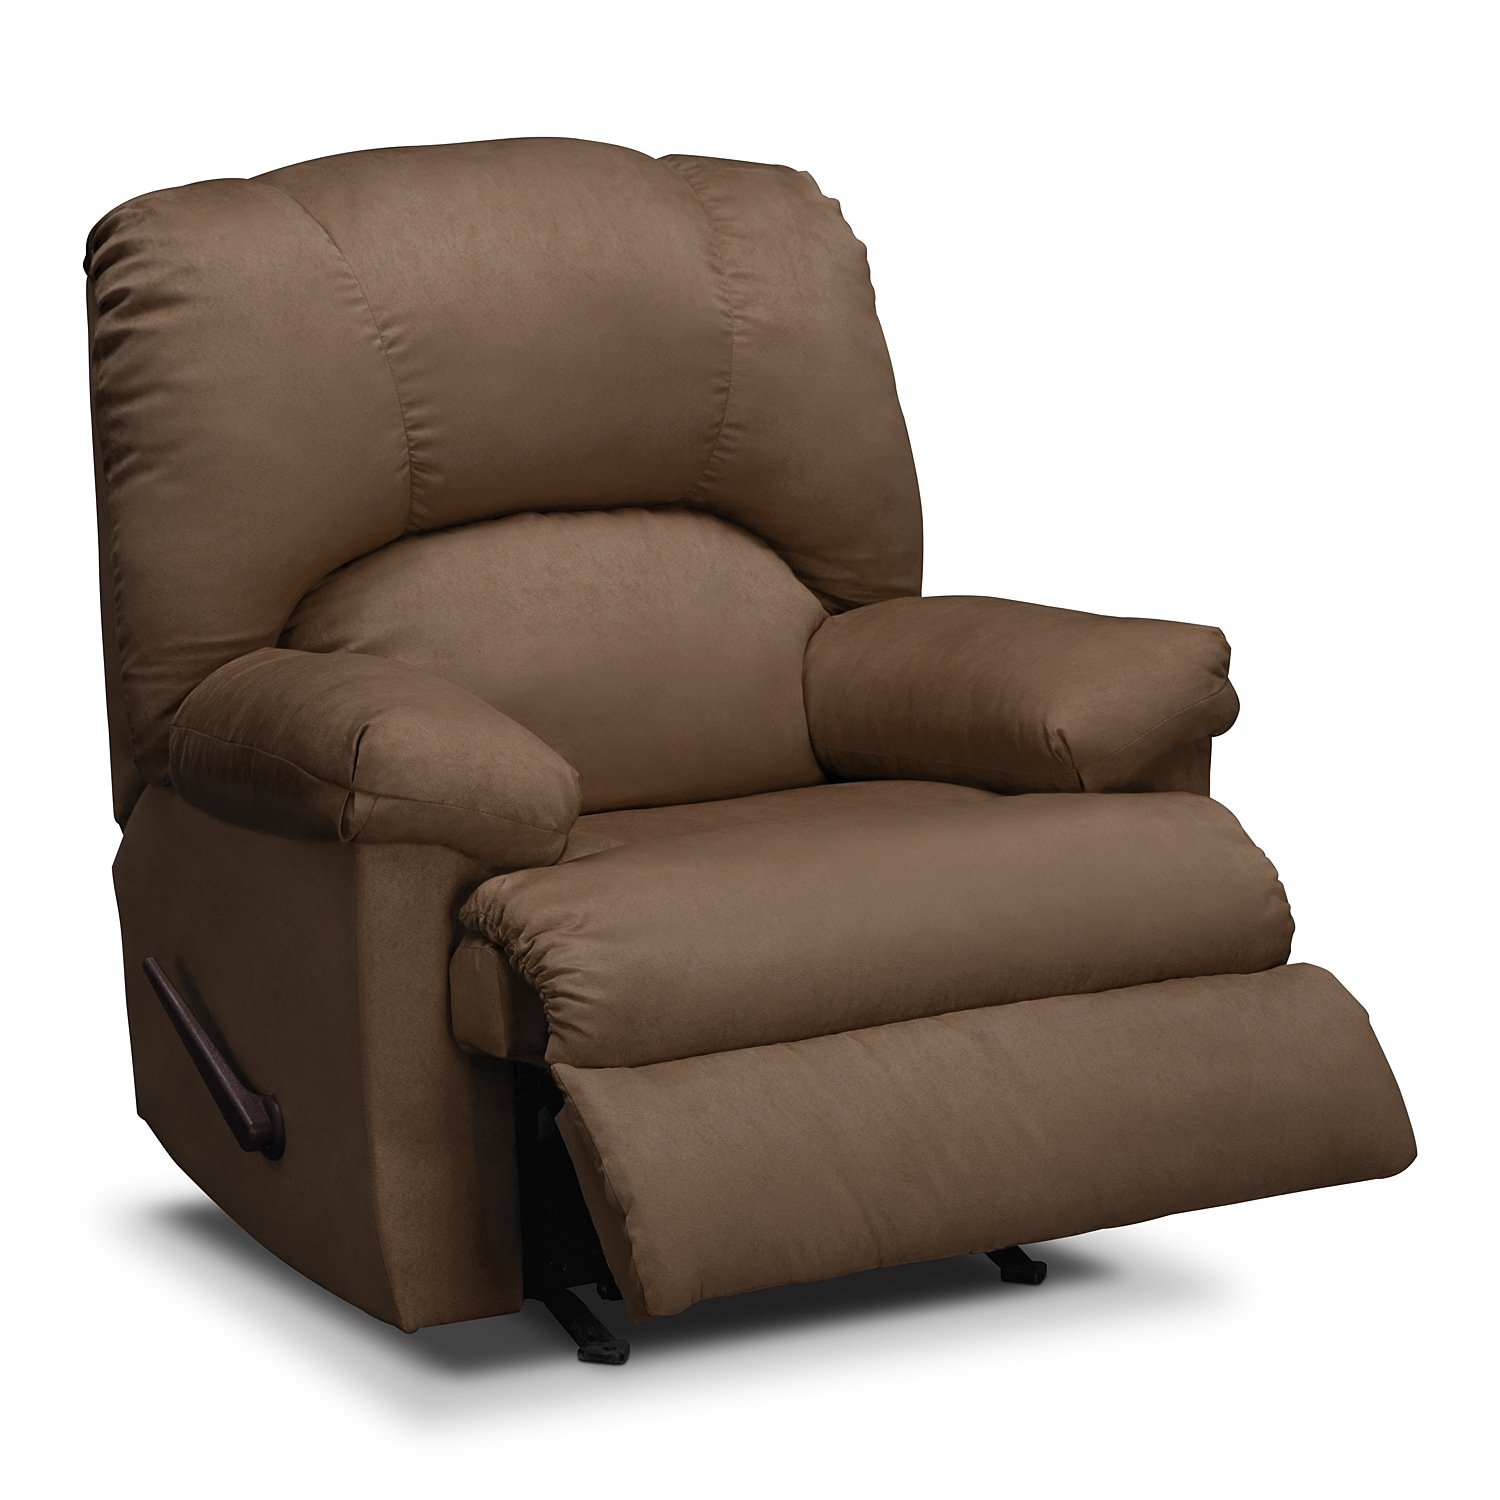 recliner elegant small upholstered and leather synthetic awesome space of white rocker